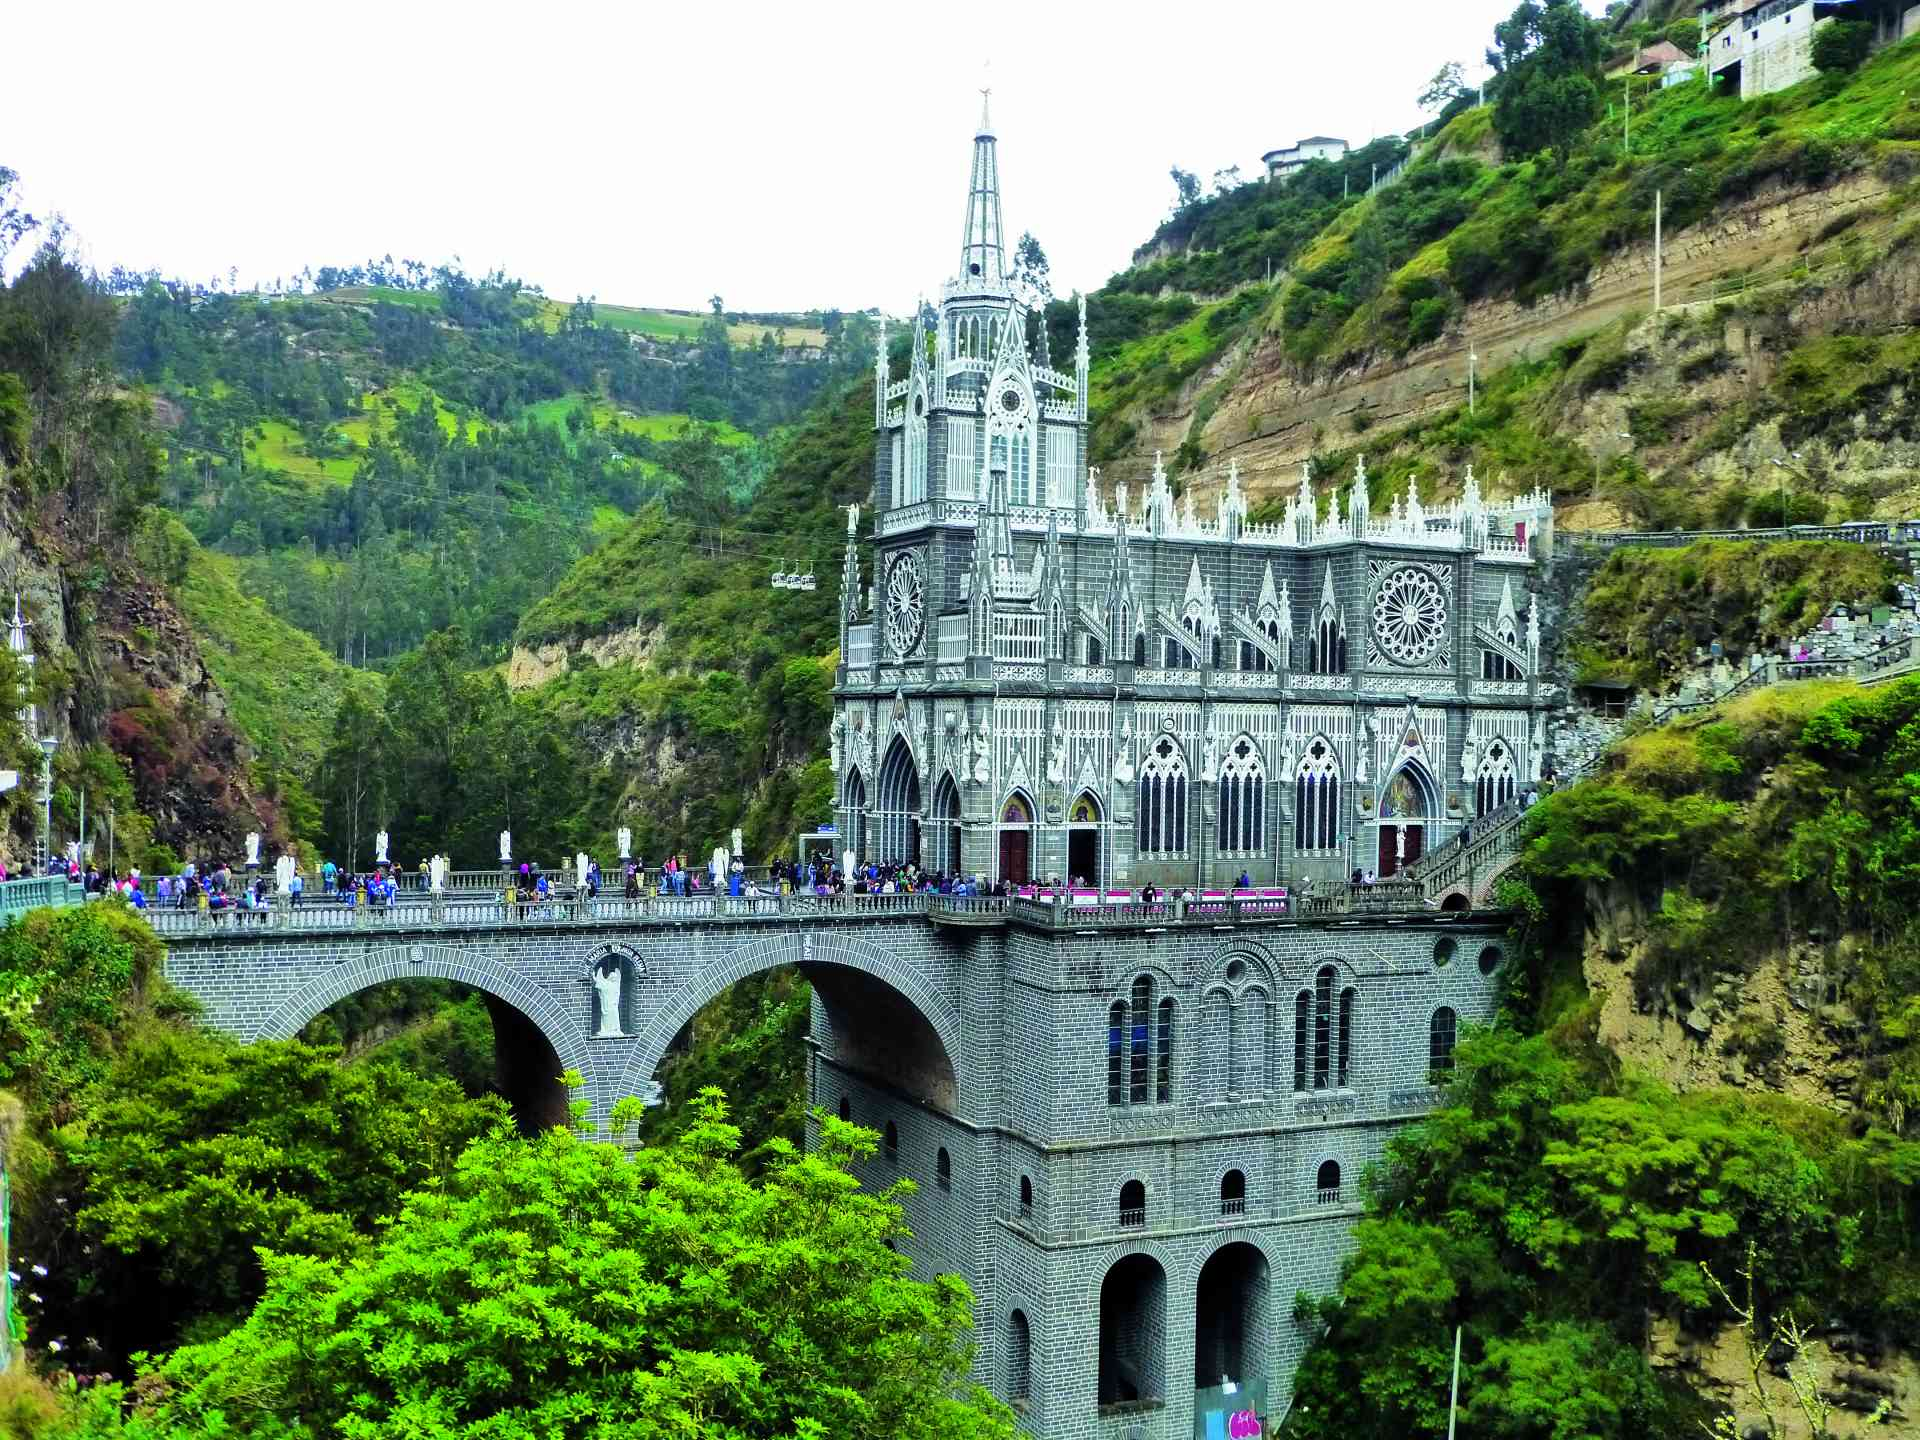 Las Lajas Sanctuary, Colombia by Sacha Bunnik